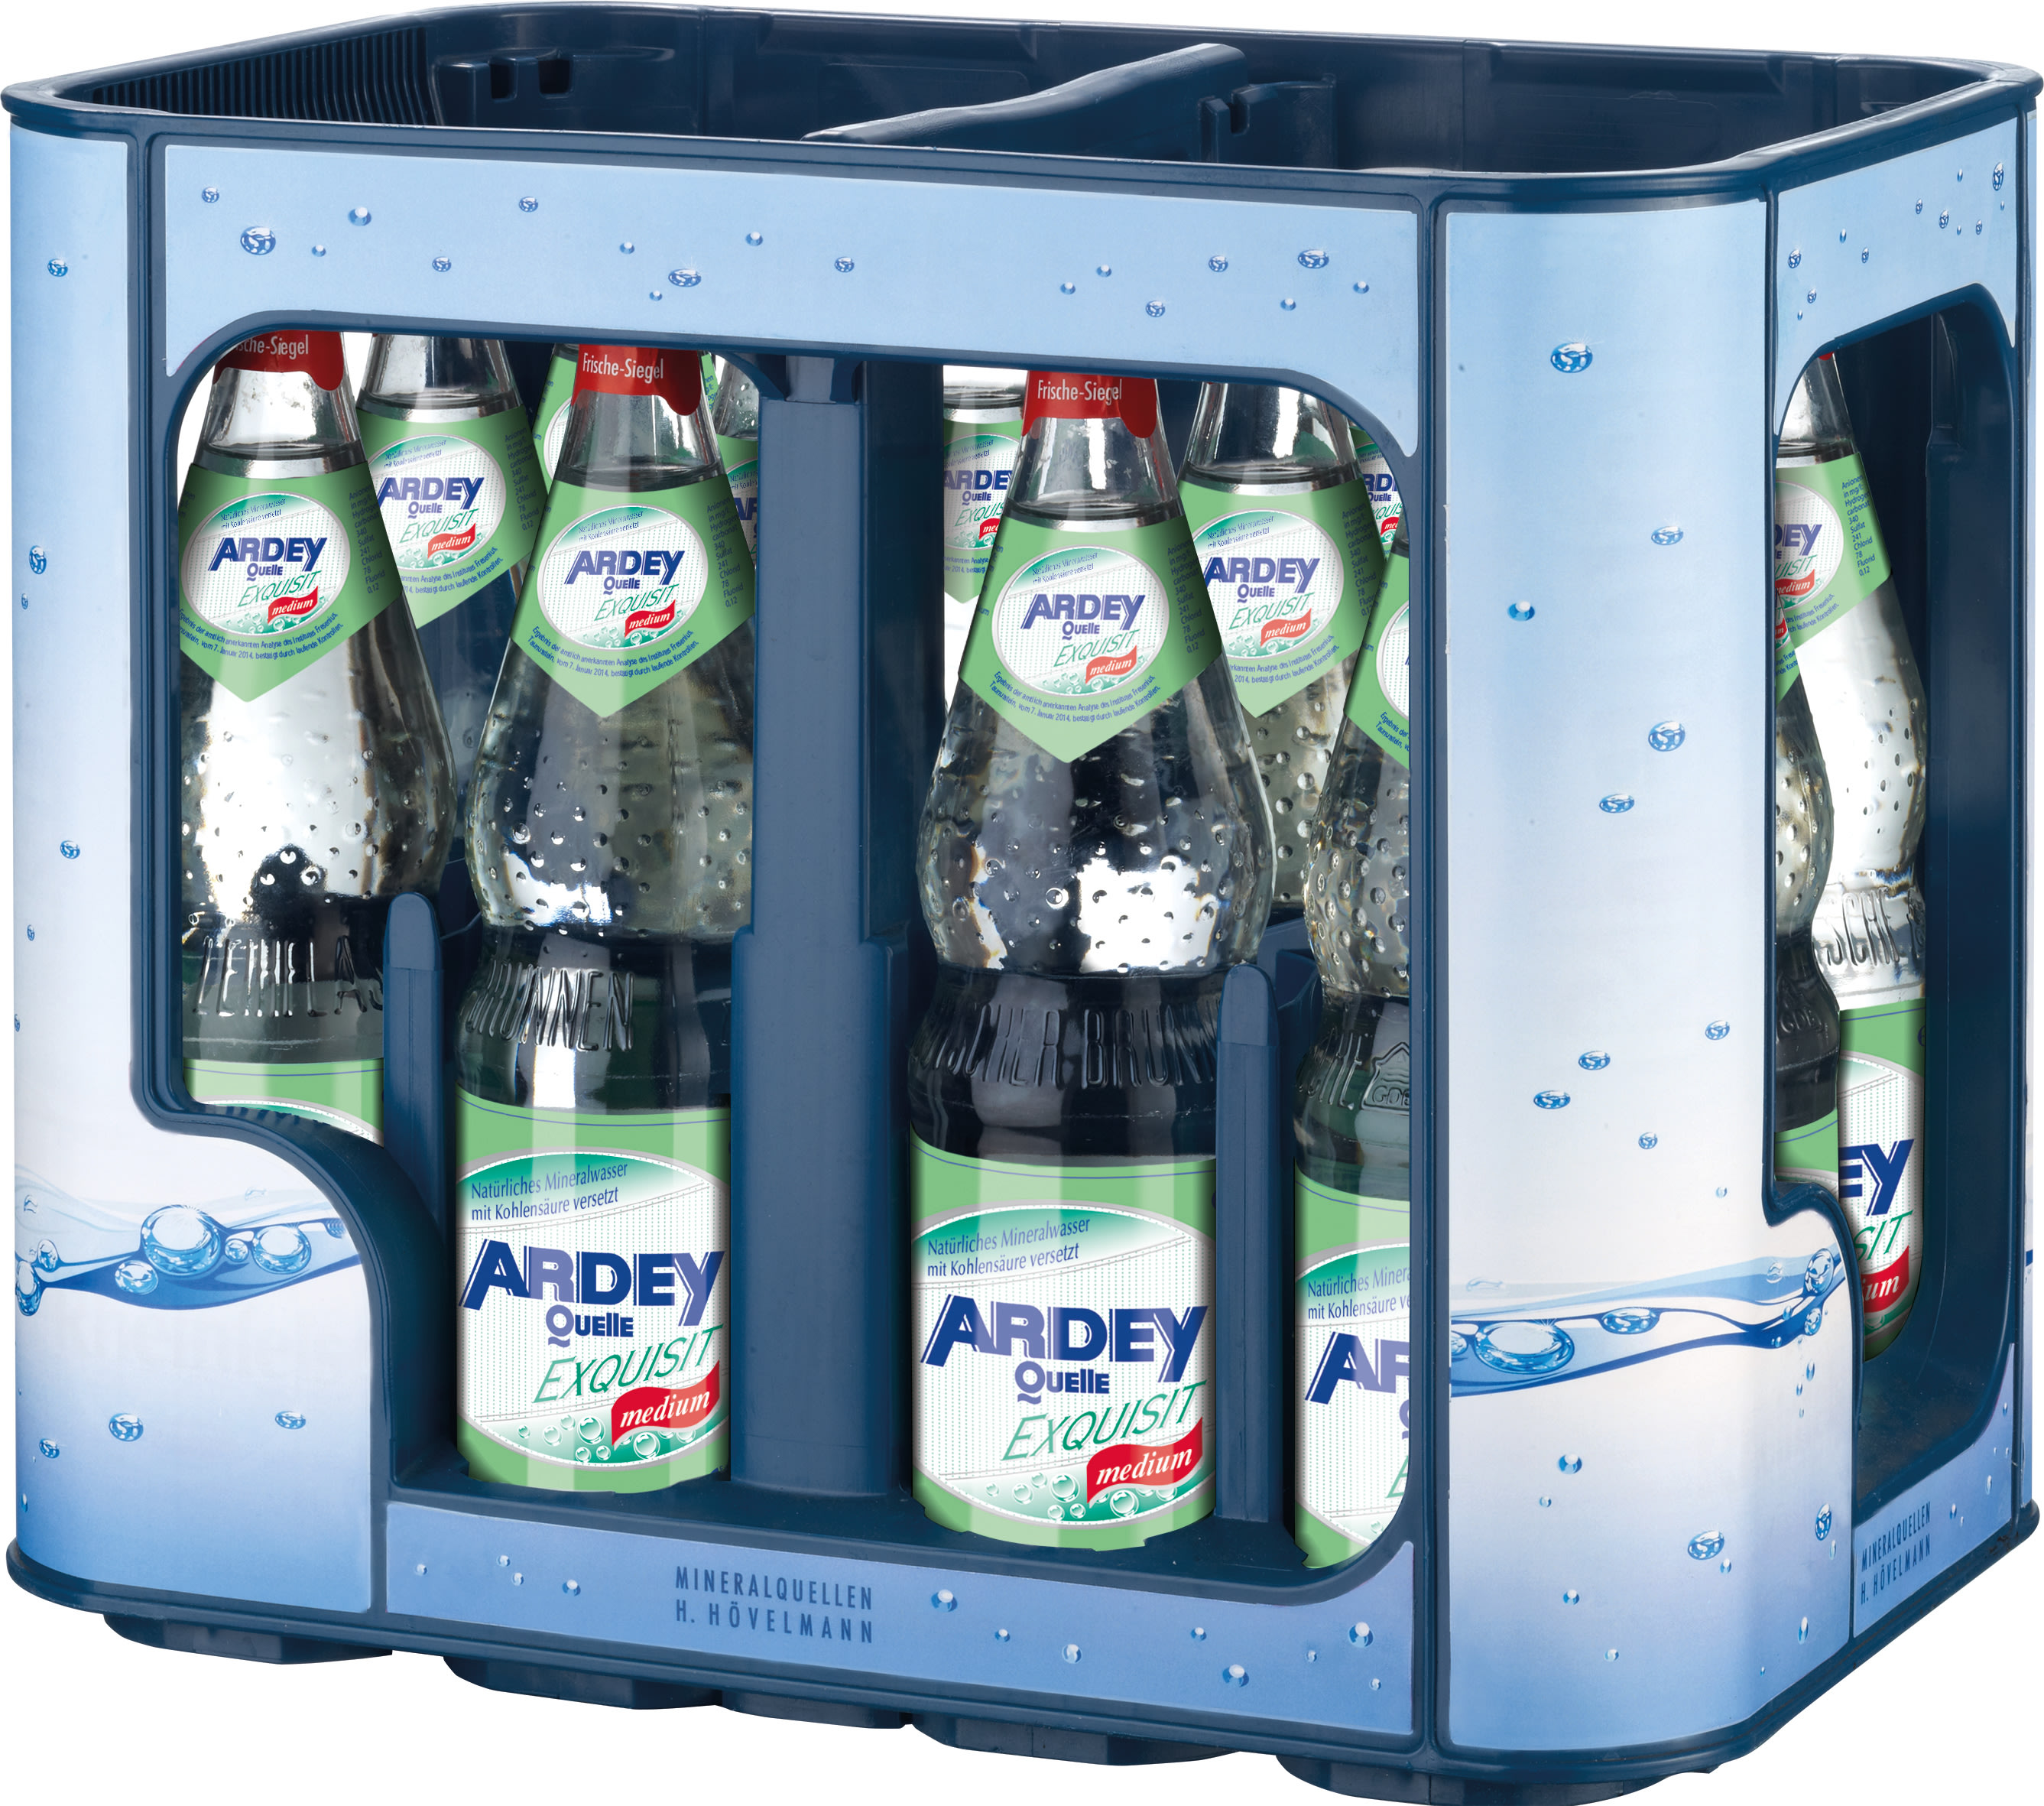 Ardey Quelle Exquisit Medium Kasten 12 x 0,7 l Glas Mehrweg